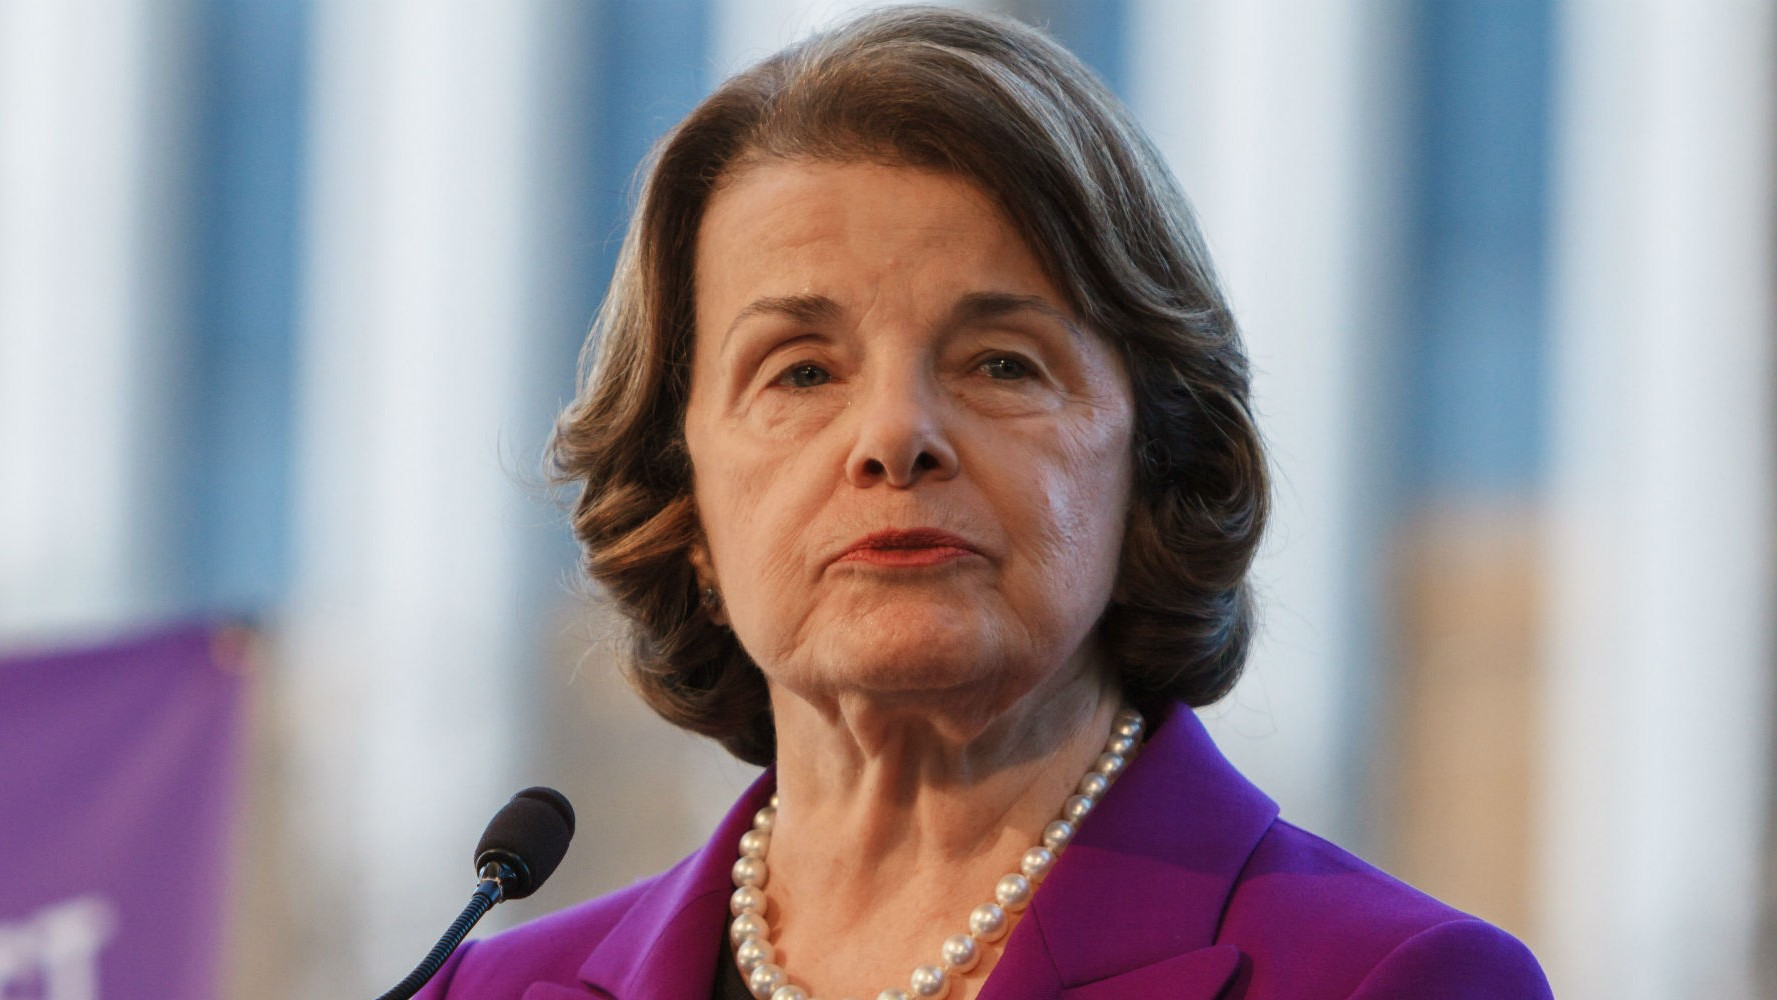 Sen. Feinstein Says Terrorists Only Need The Internet and Encryption To Attack